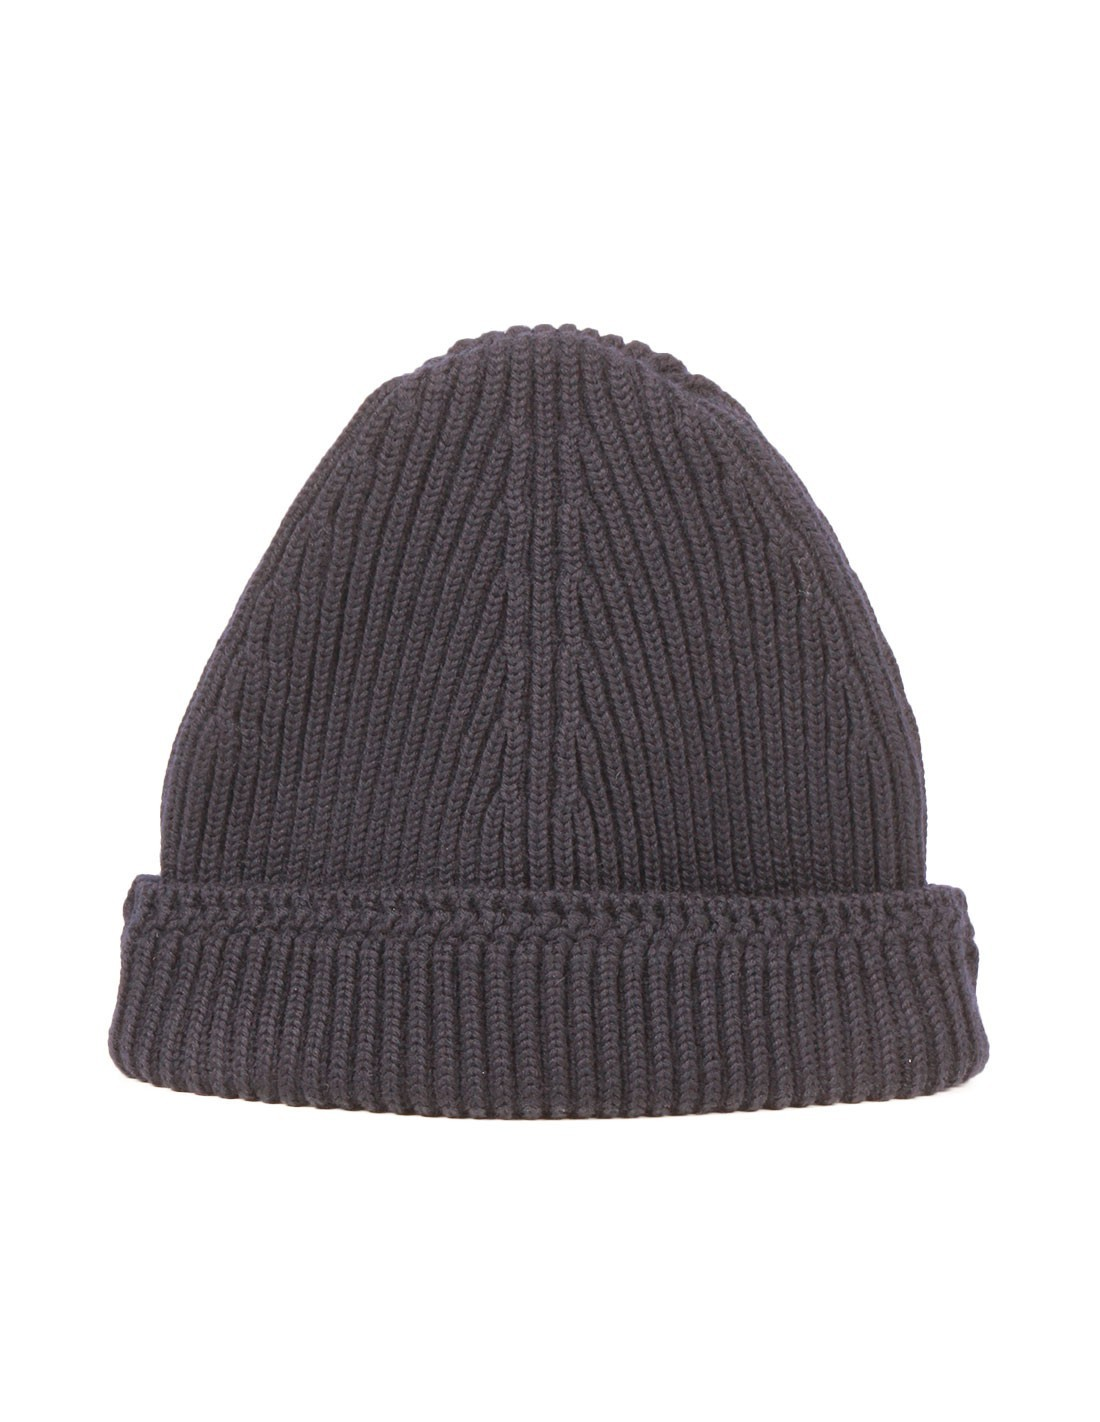 c4f23e47c82 ... Maison Margiela · Beanie in navy wool with Margiela stitches. New